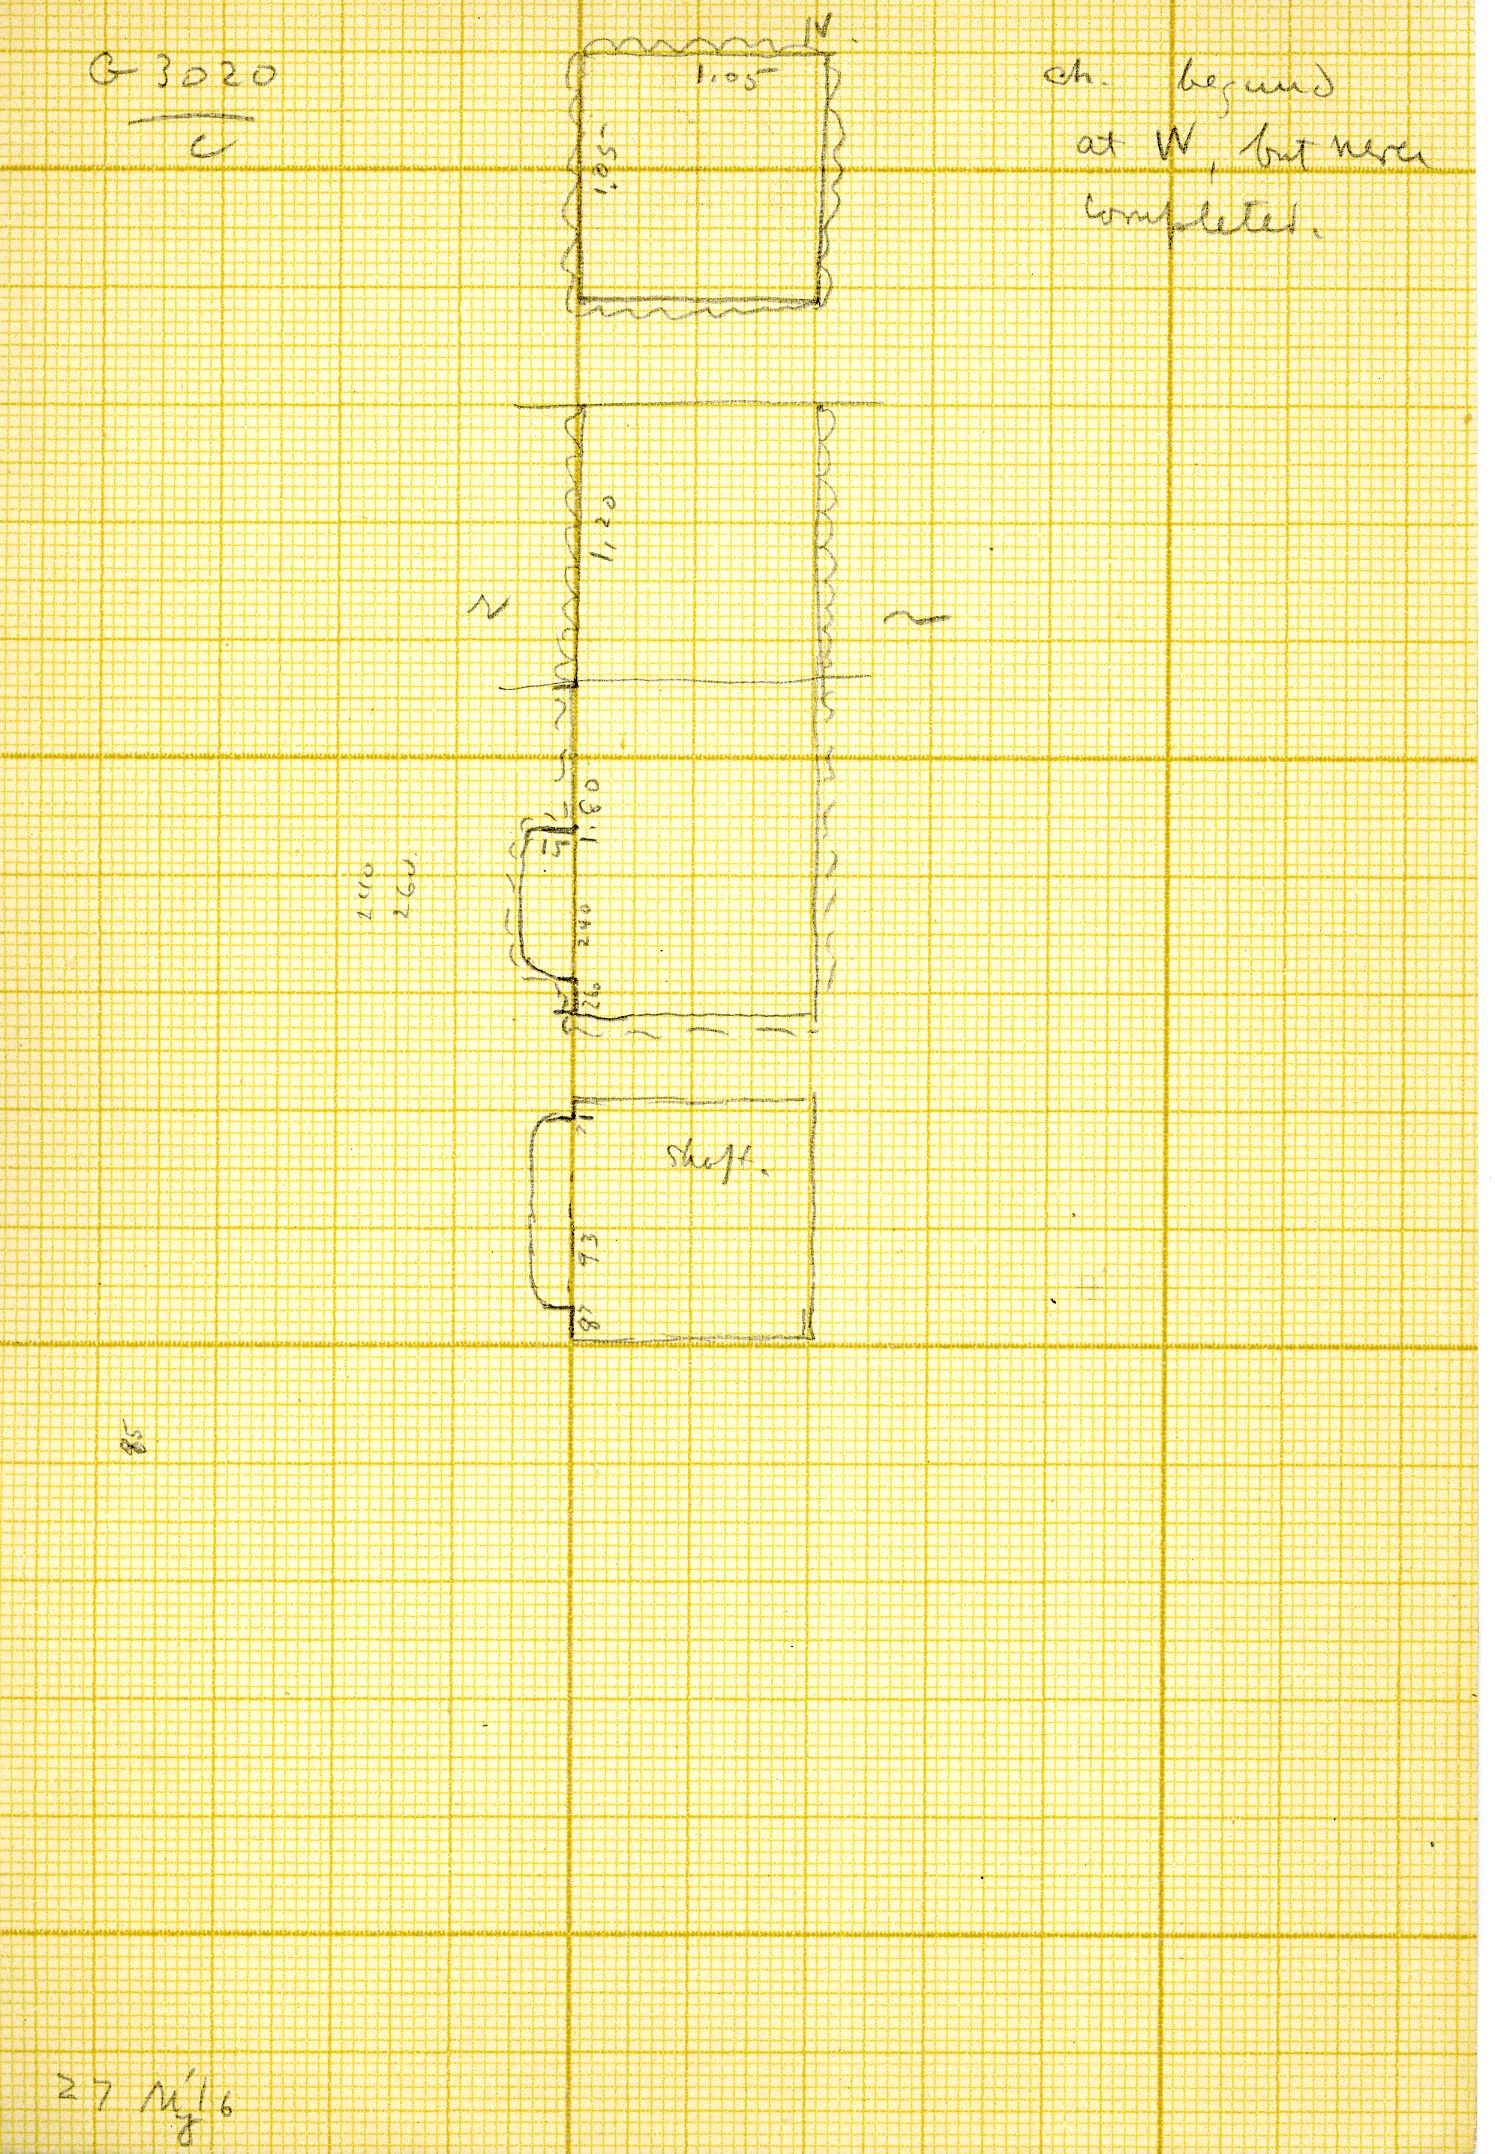 Maps and plans: G 3020, Shaft C